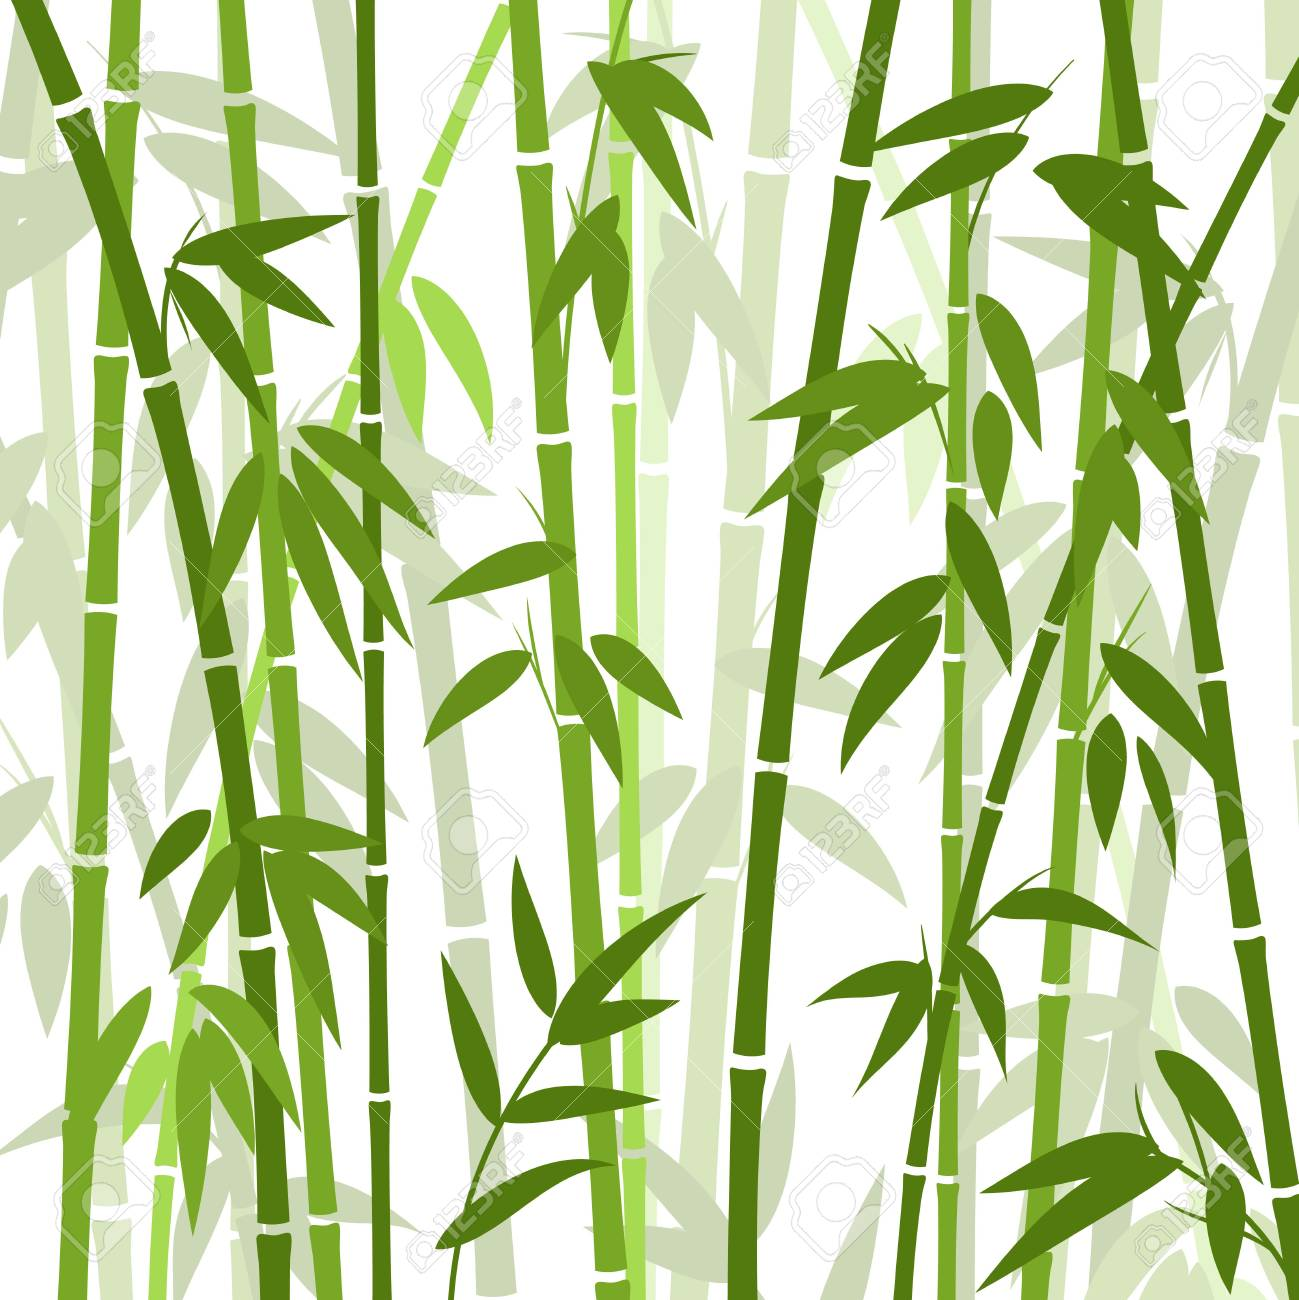 Chinese Or Japanese Bamboo Grass Oriental Wallpaper Vector Illustration Royalty Free Cliparts Vectors And Stock Illustration Image 69538595